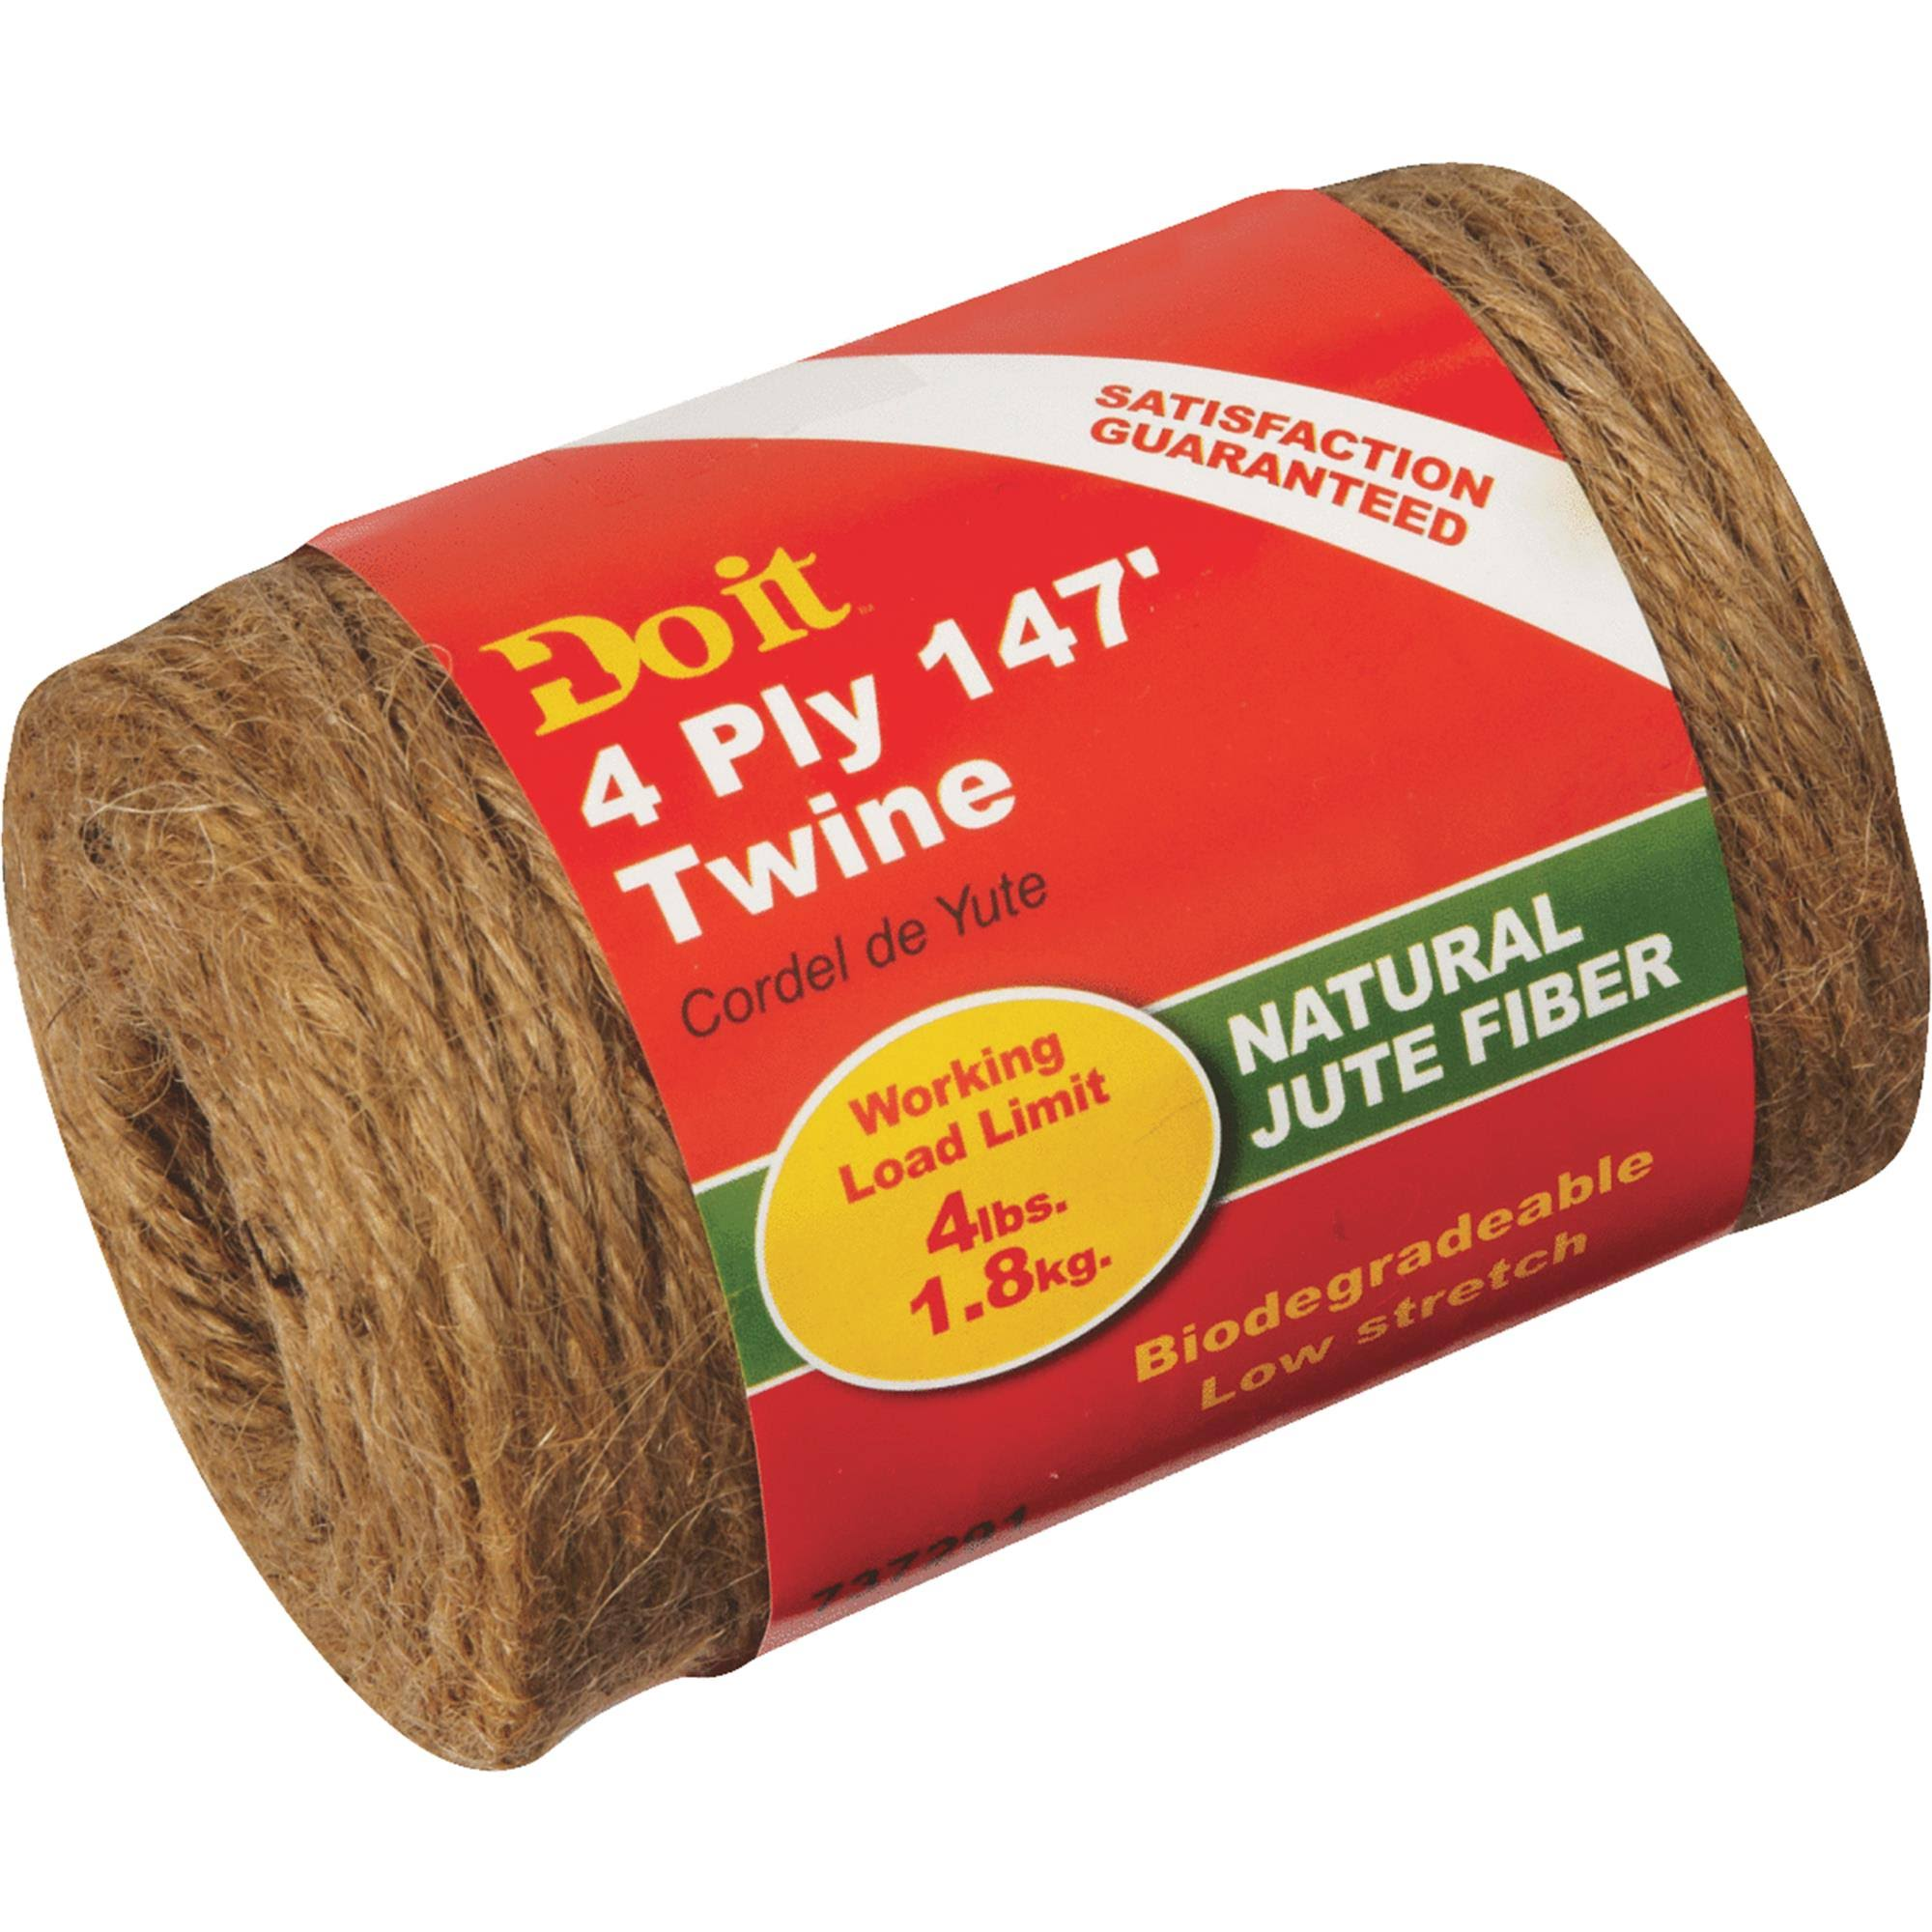 Do It Jute Twine - 4 ply 147'